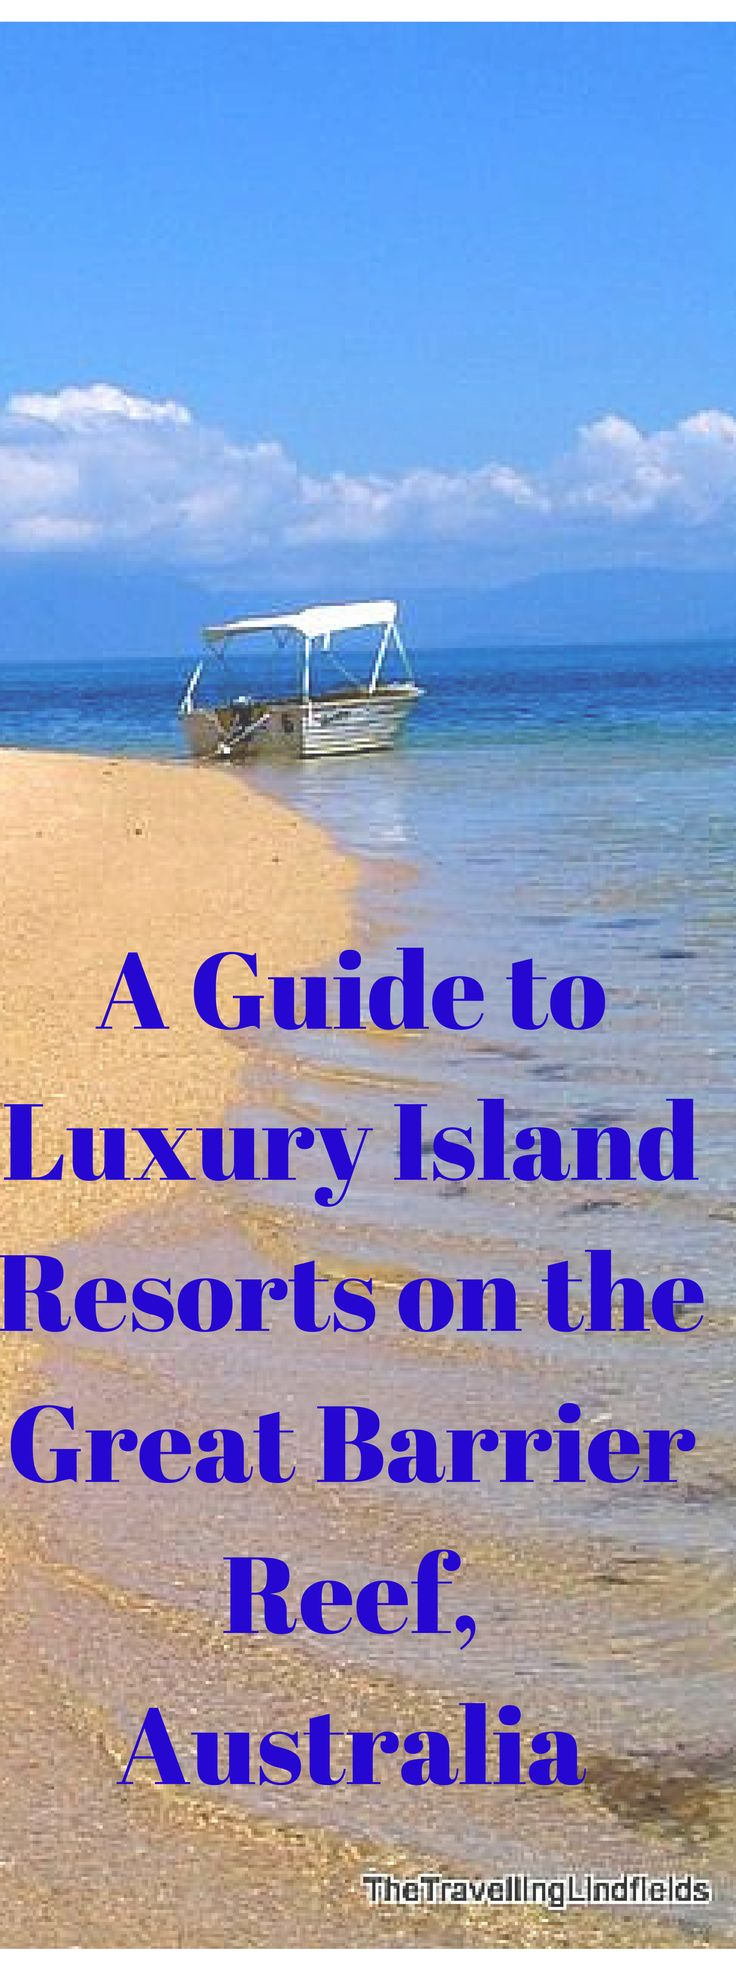 Lizard Island, Qualia and Bedarra Island - a guide to luxury island resorts on the Great Barrier Reef, Australia http://www.thetravellinglindfields.com/2015/05/the-great-barrier-reef-luxury-island.html